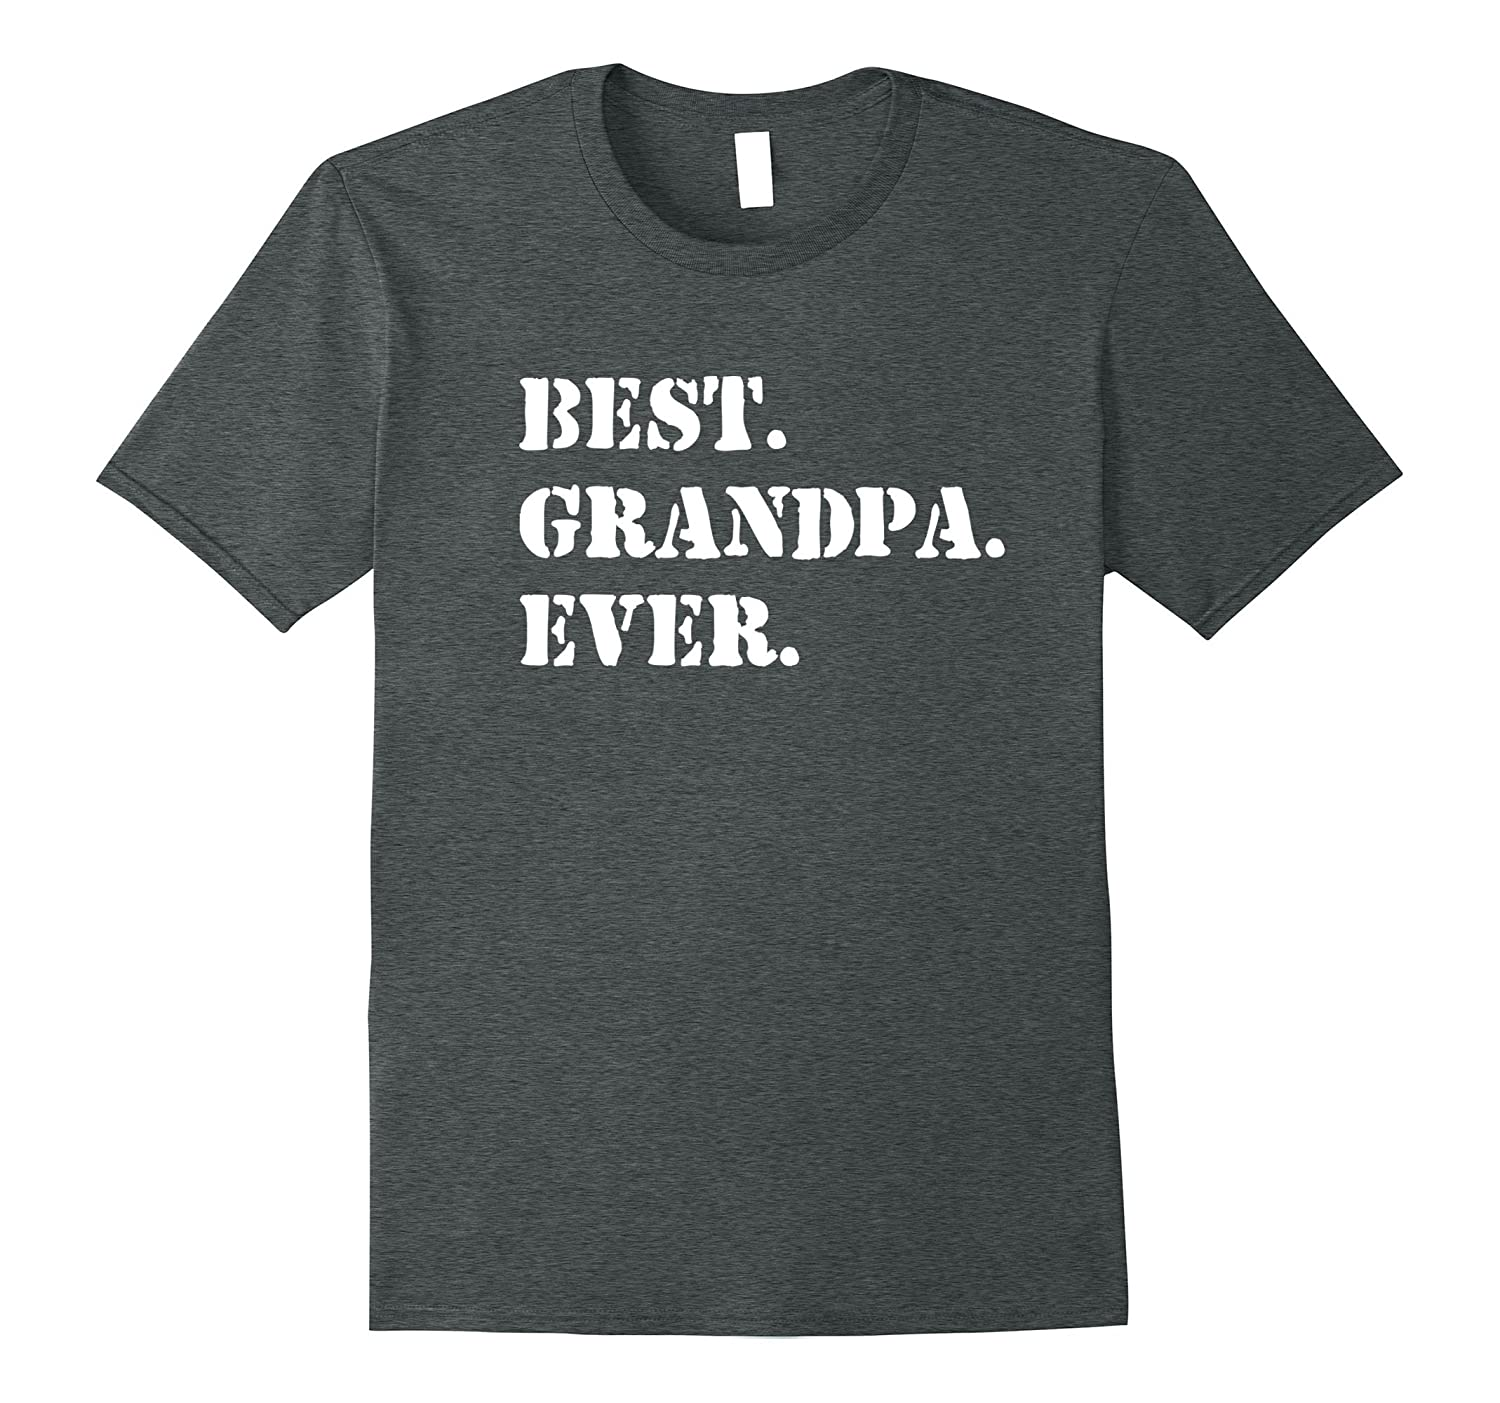 Best Grandpa Ever tshirt (military or army style font)